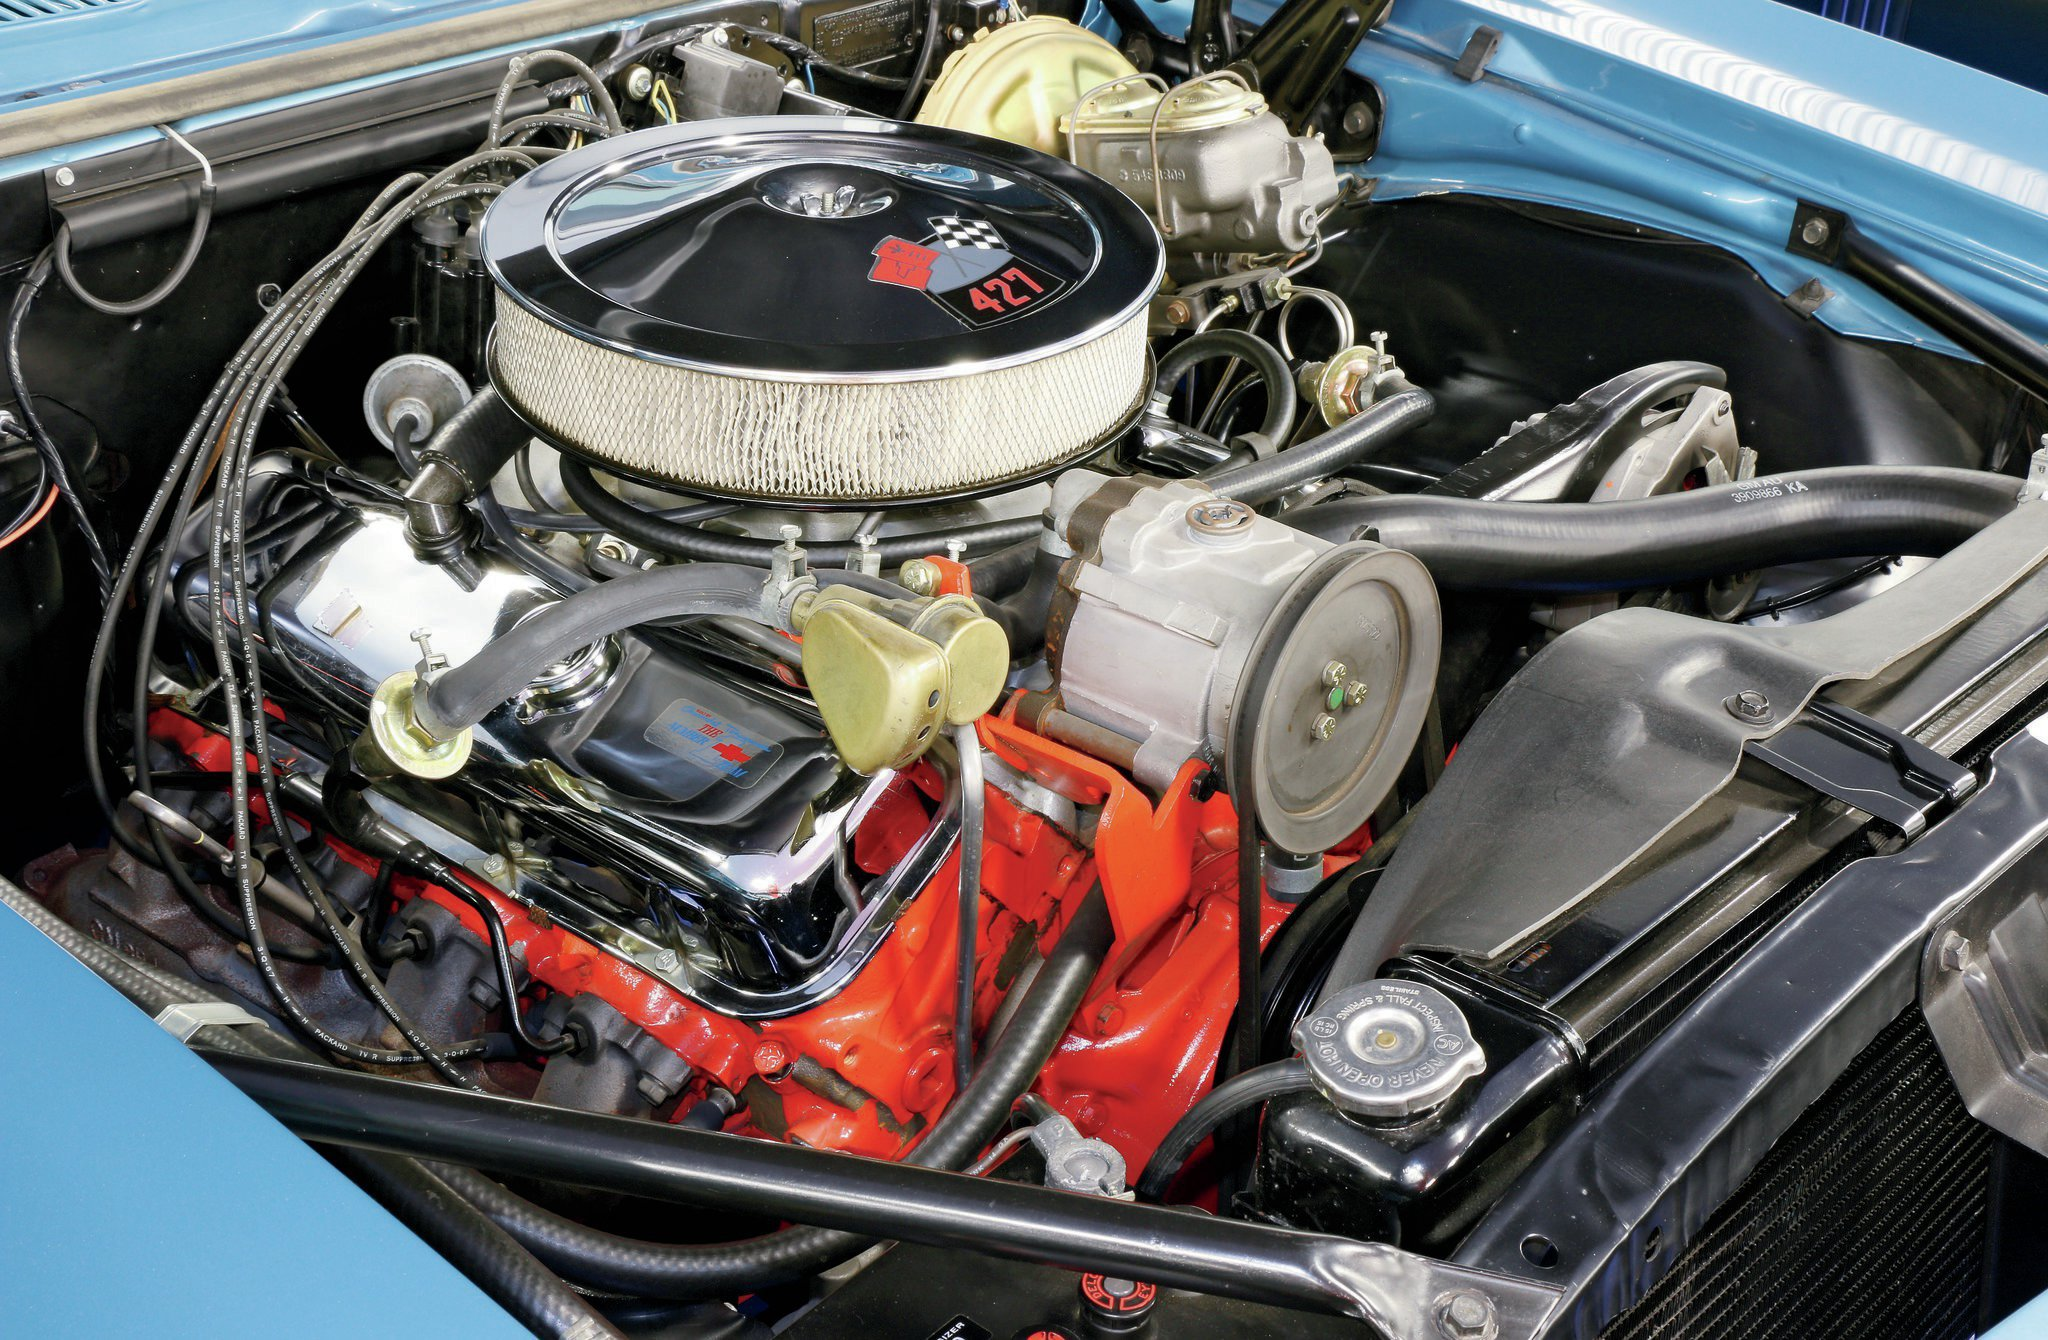 Yenko's mechanics would start with the factory 396/375-horse L78 engine, remove the intake manifold and cylinder heads, and swap the 396 short-block for an L72 427ci GM CE-stamped short-block.